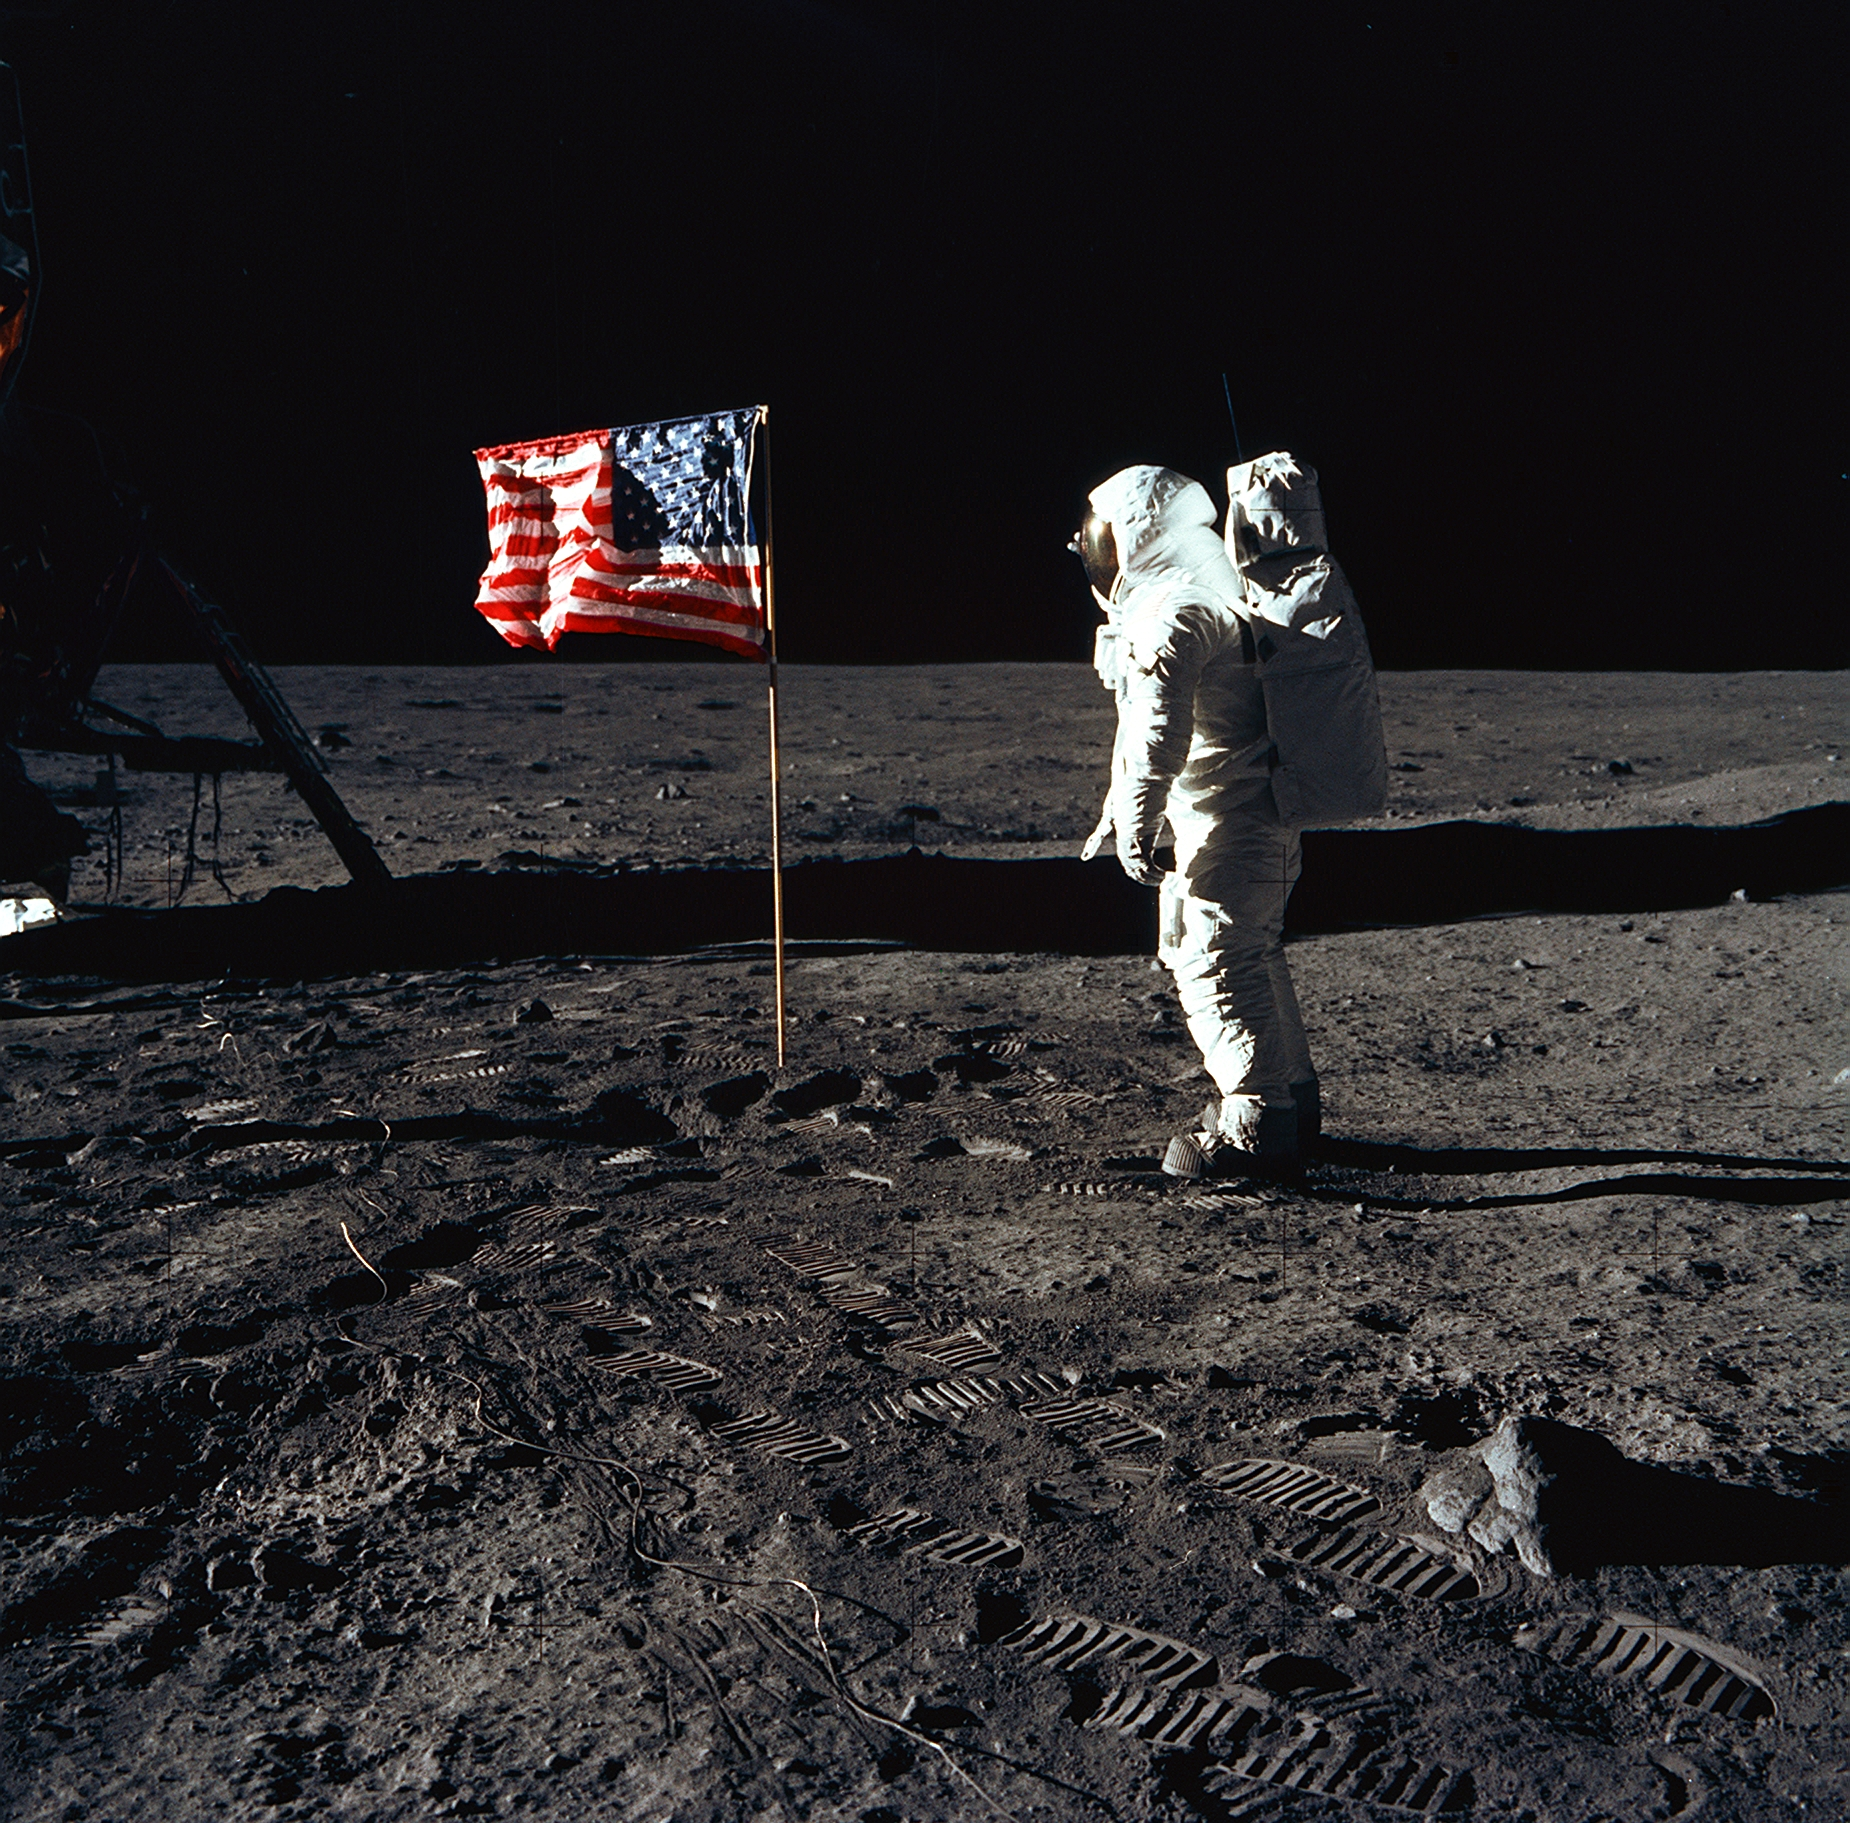 Buzz Aldrin poses with the American flag on the Moon, July 20, 1969